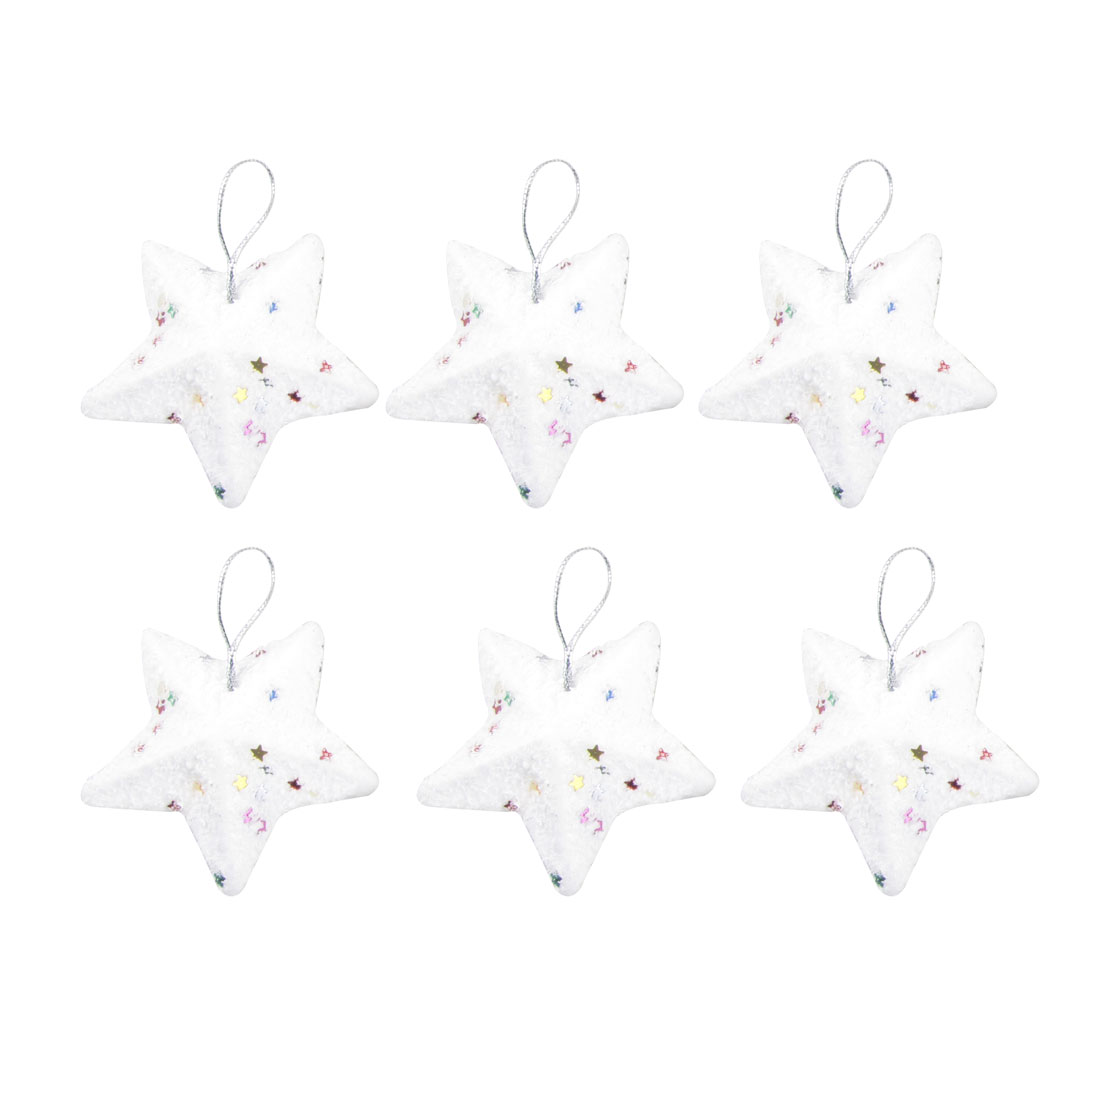 Festival Christmas Tree Glittery Star Pendant Hanging Ornament Decoration 6 Pcs